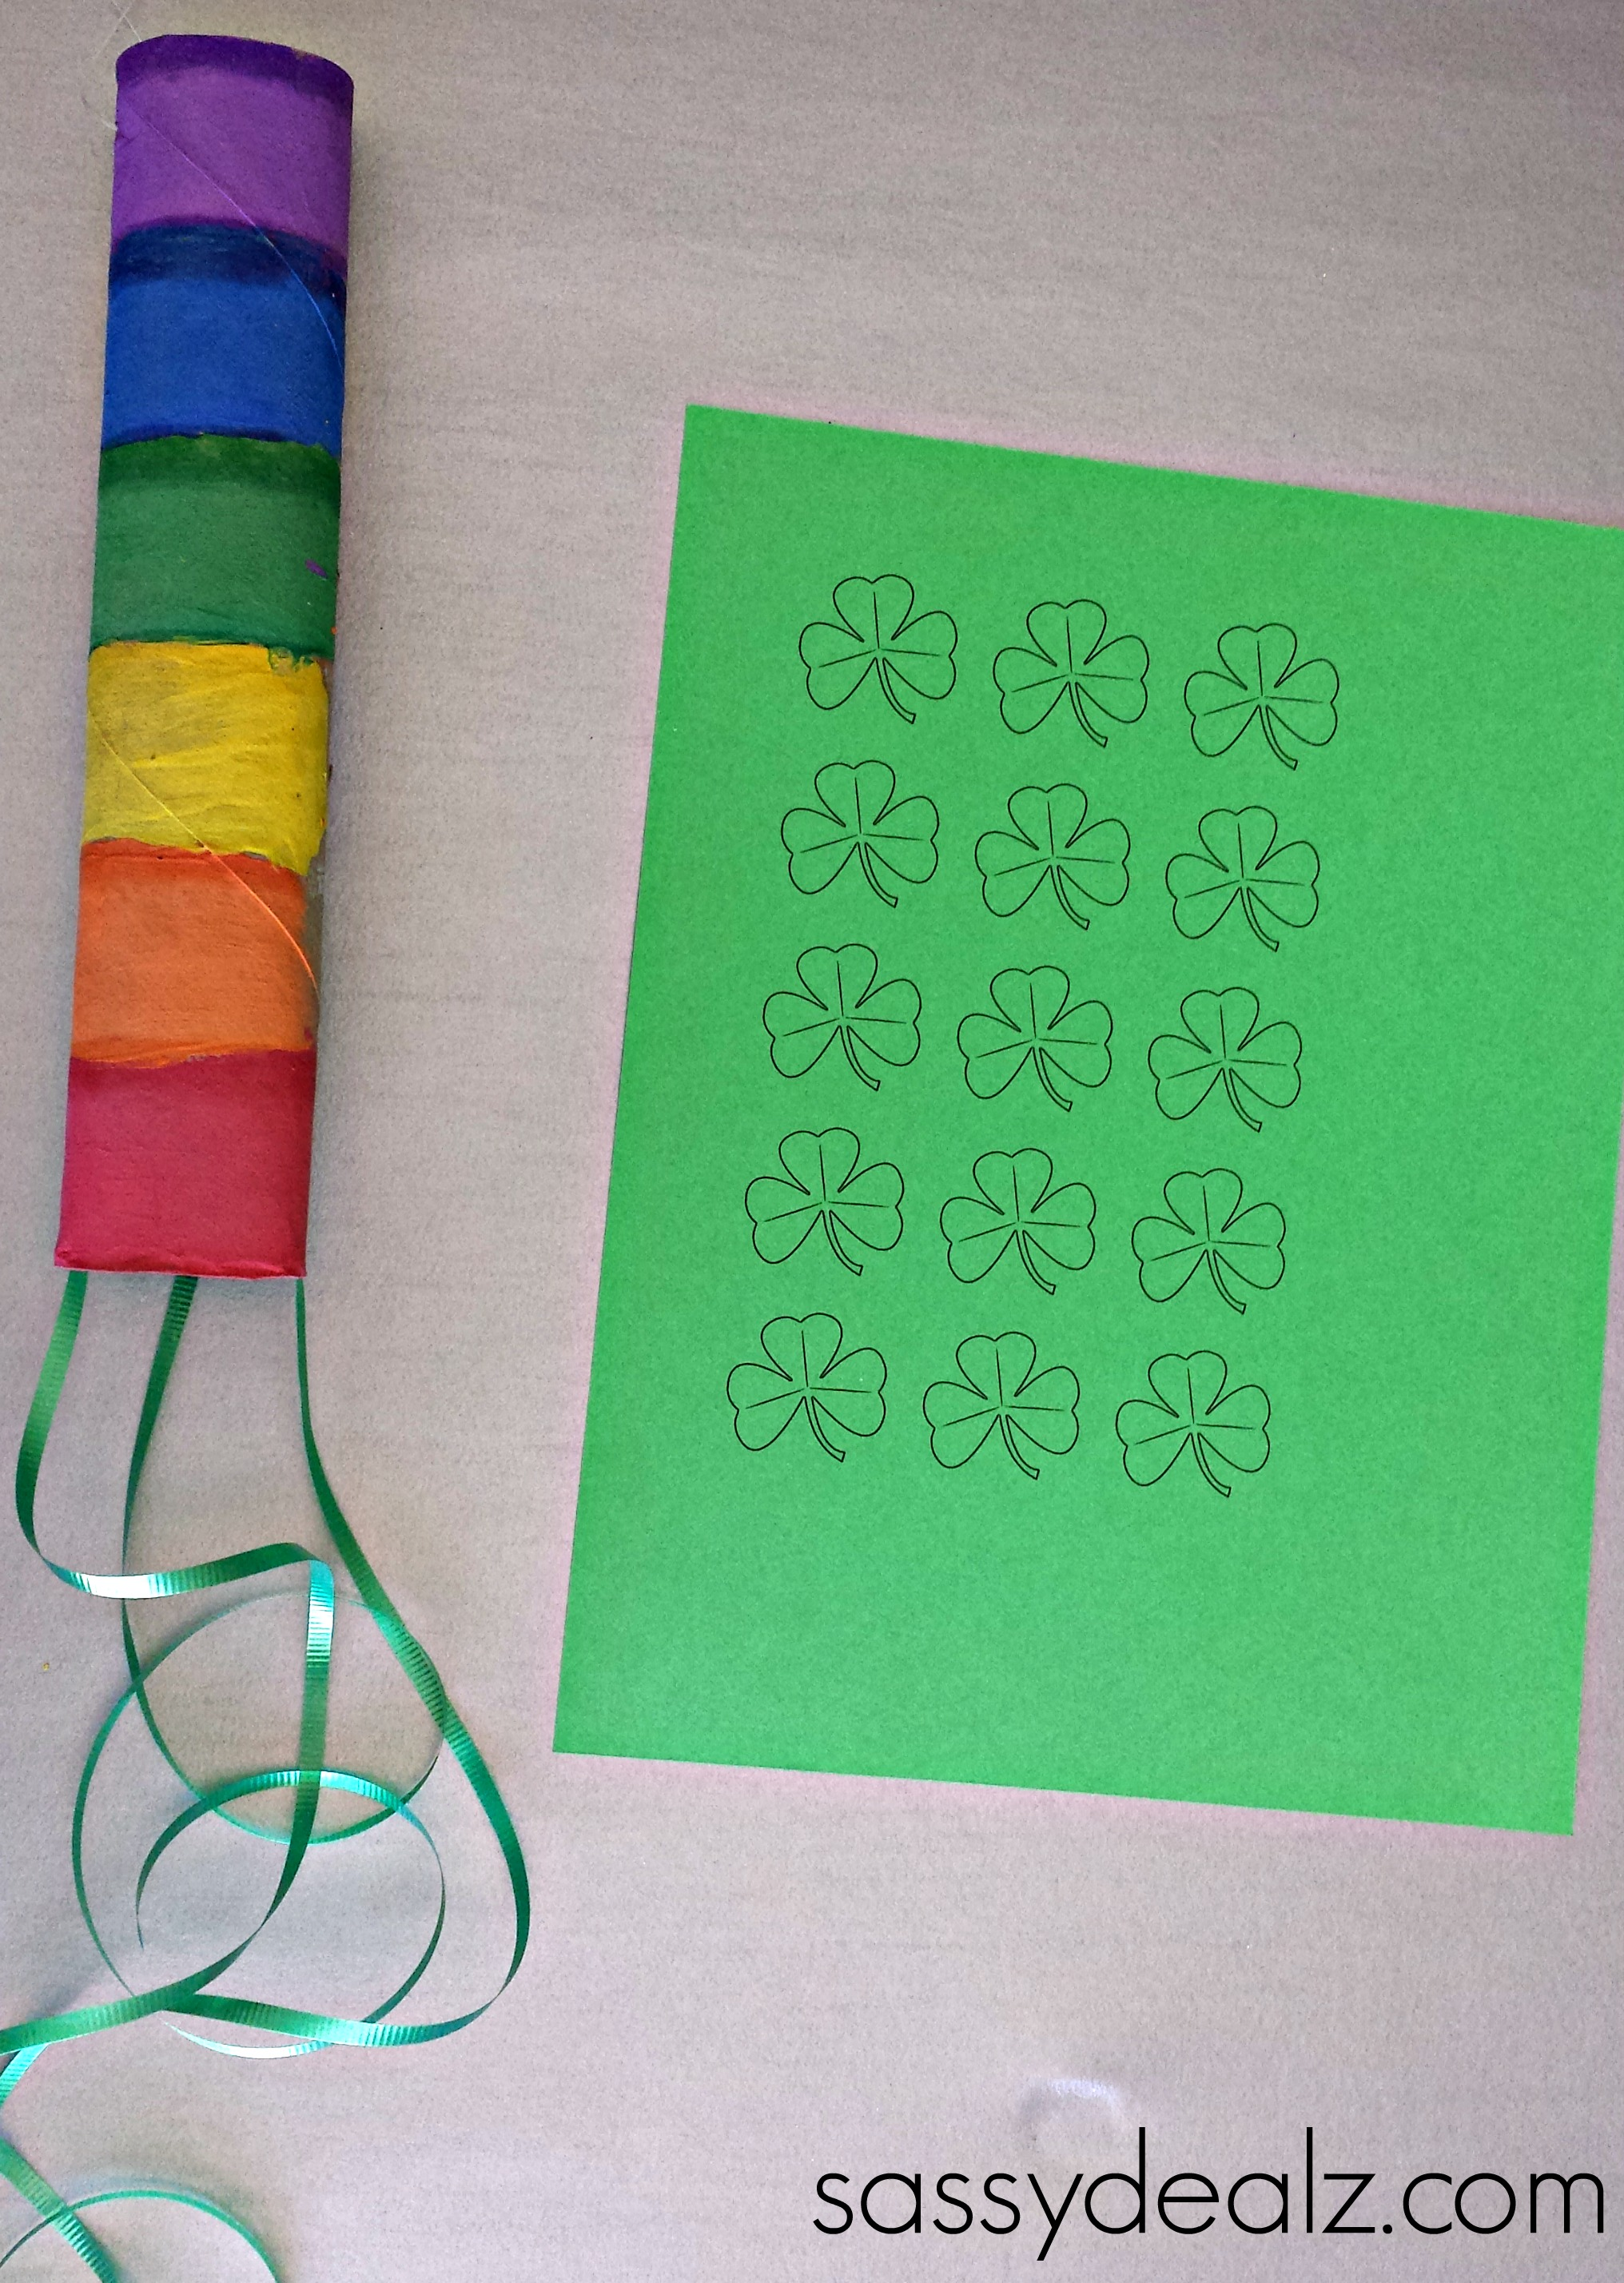 Rainbow Paper Towel Wind Catcher Craft For Kids - Crafty ...